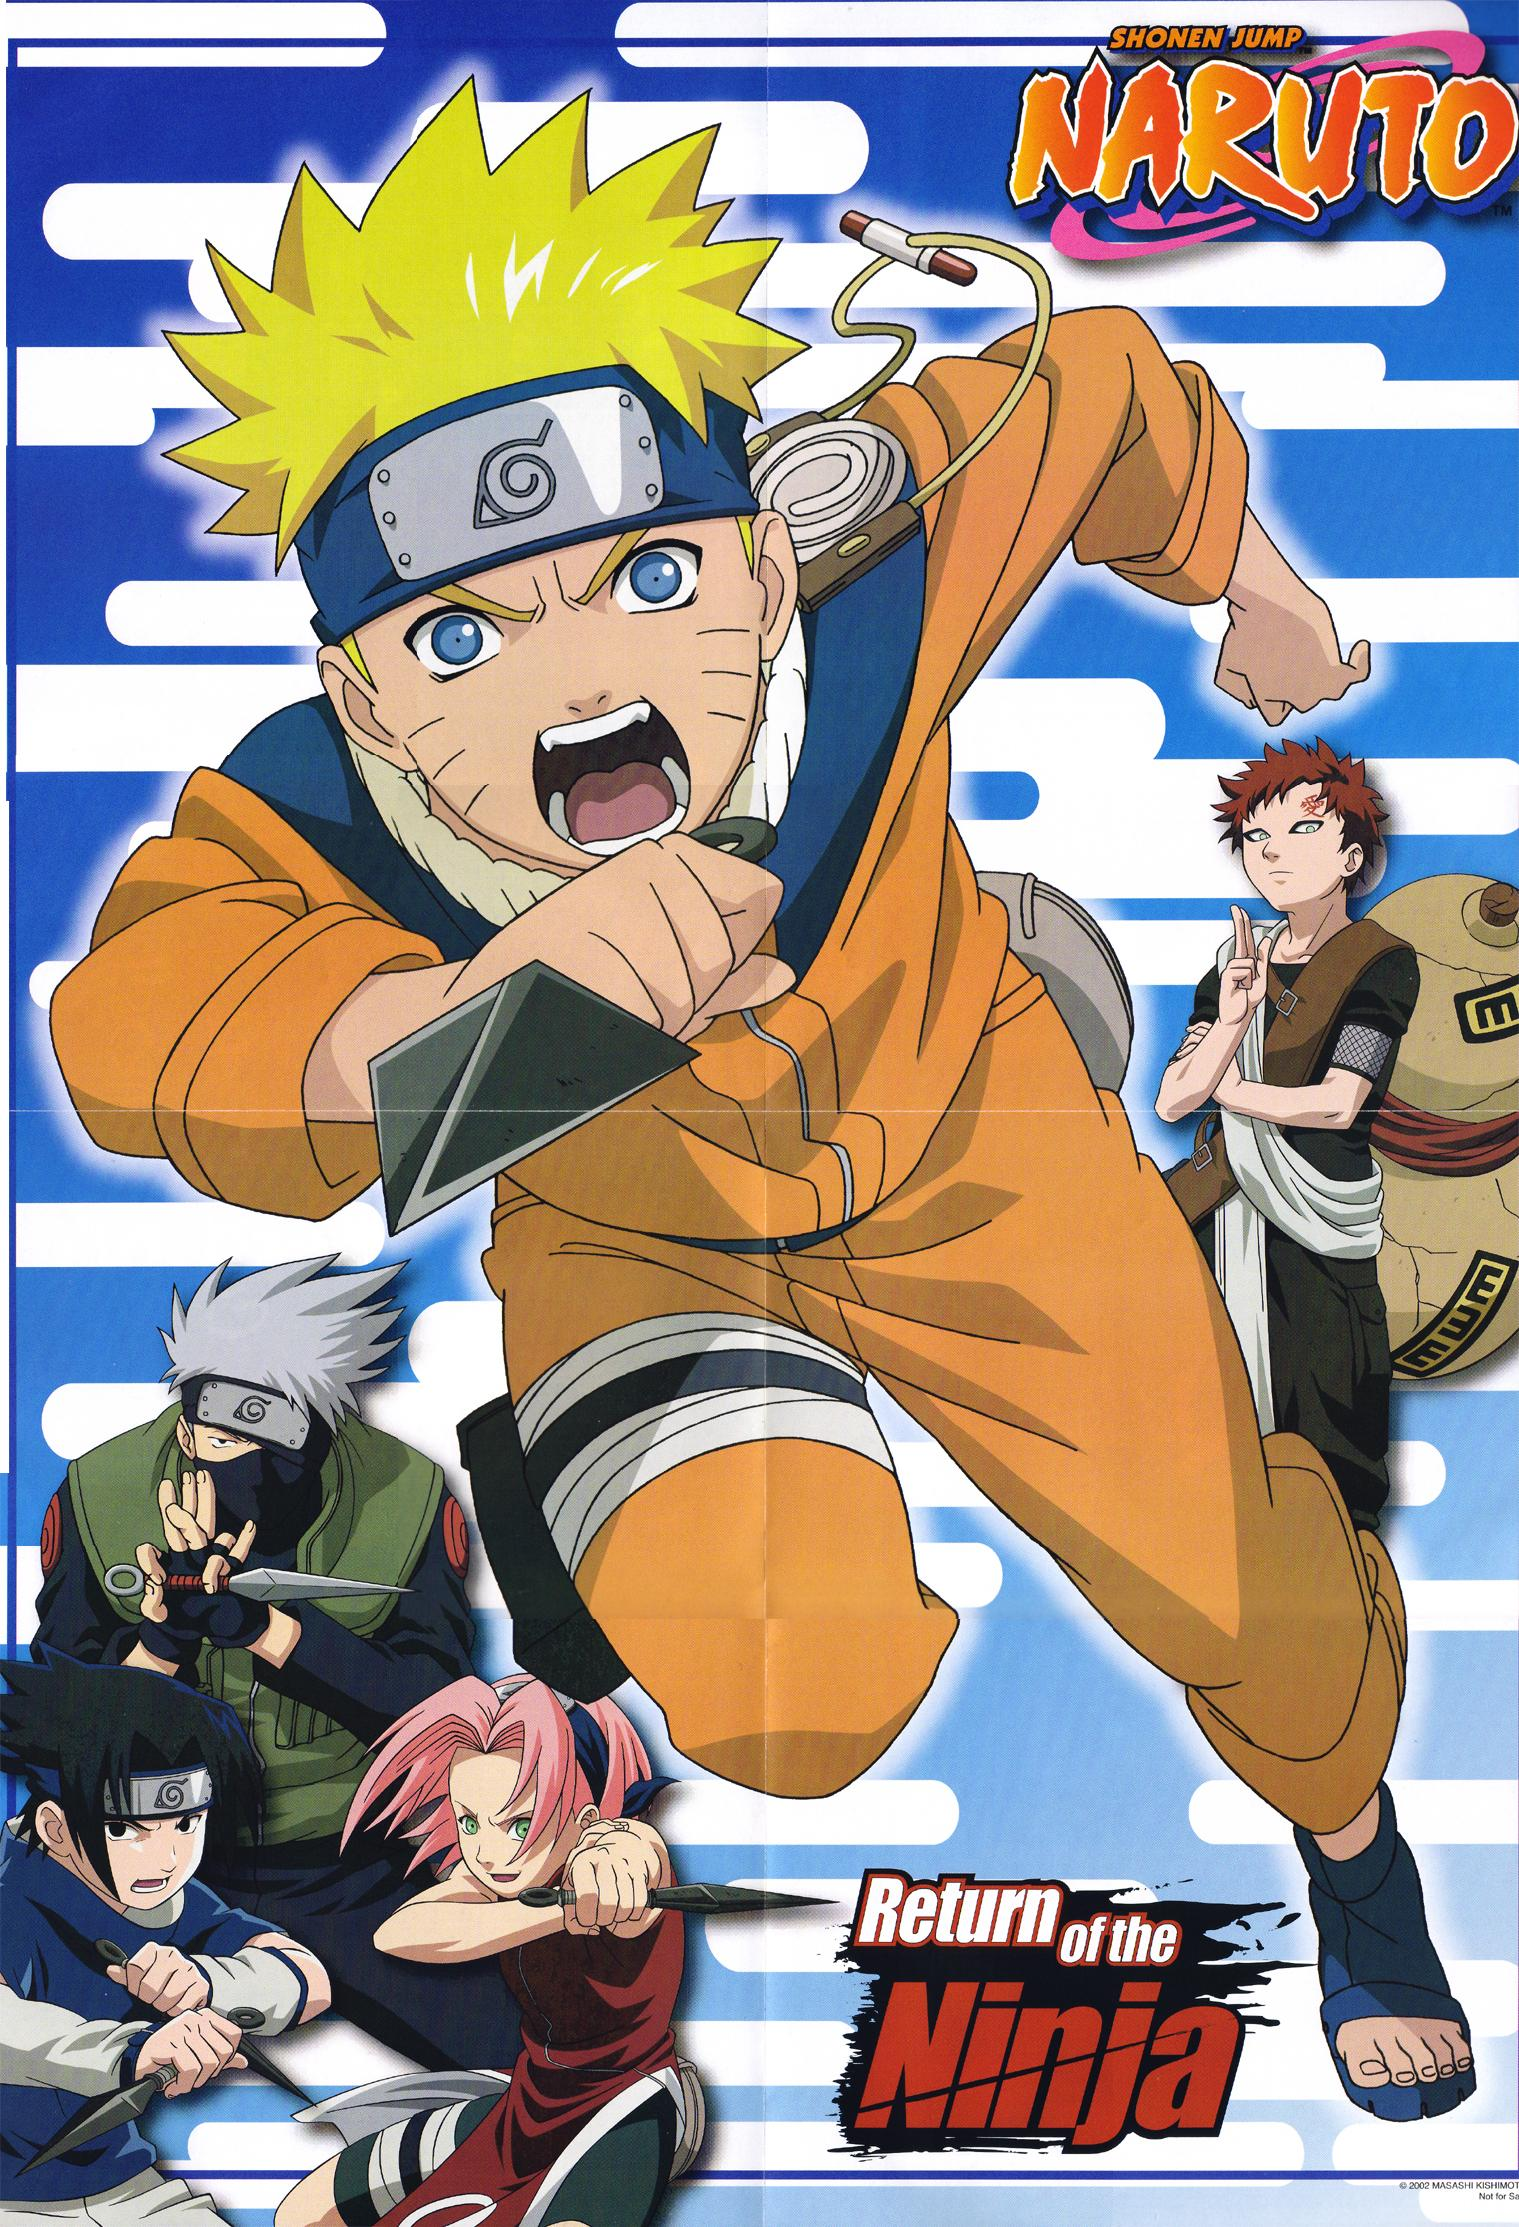 Return of the Ninja Naruto, Sasuke, Sakura, Kakashi, Gaara